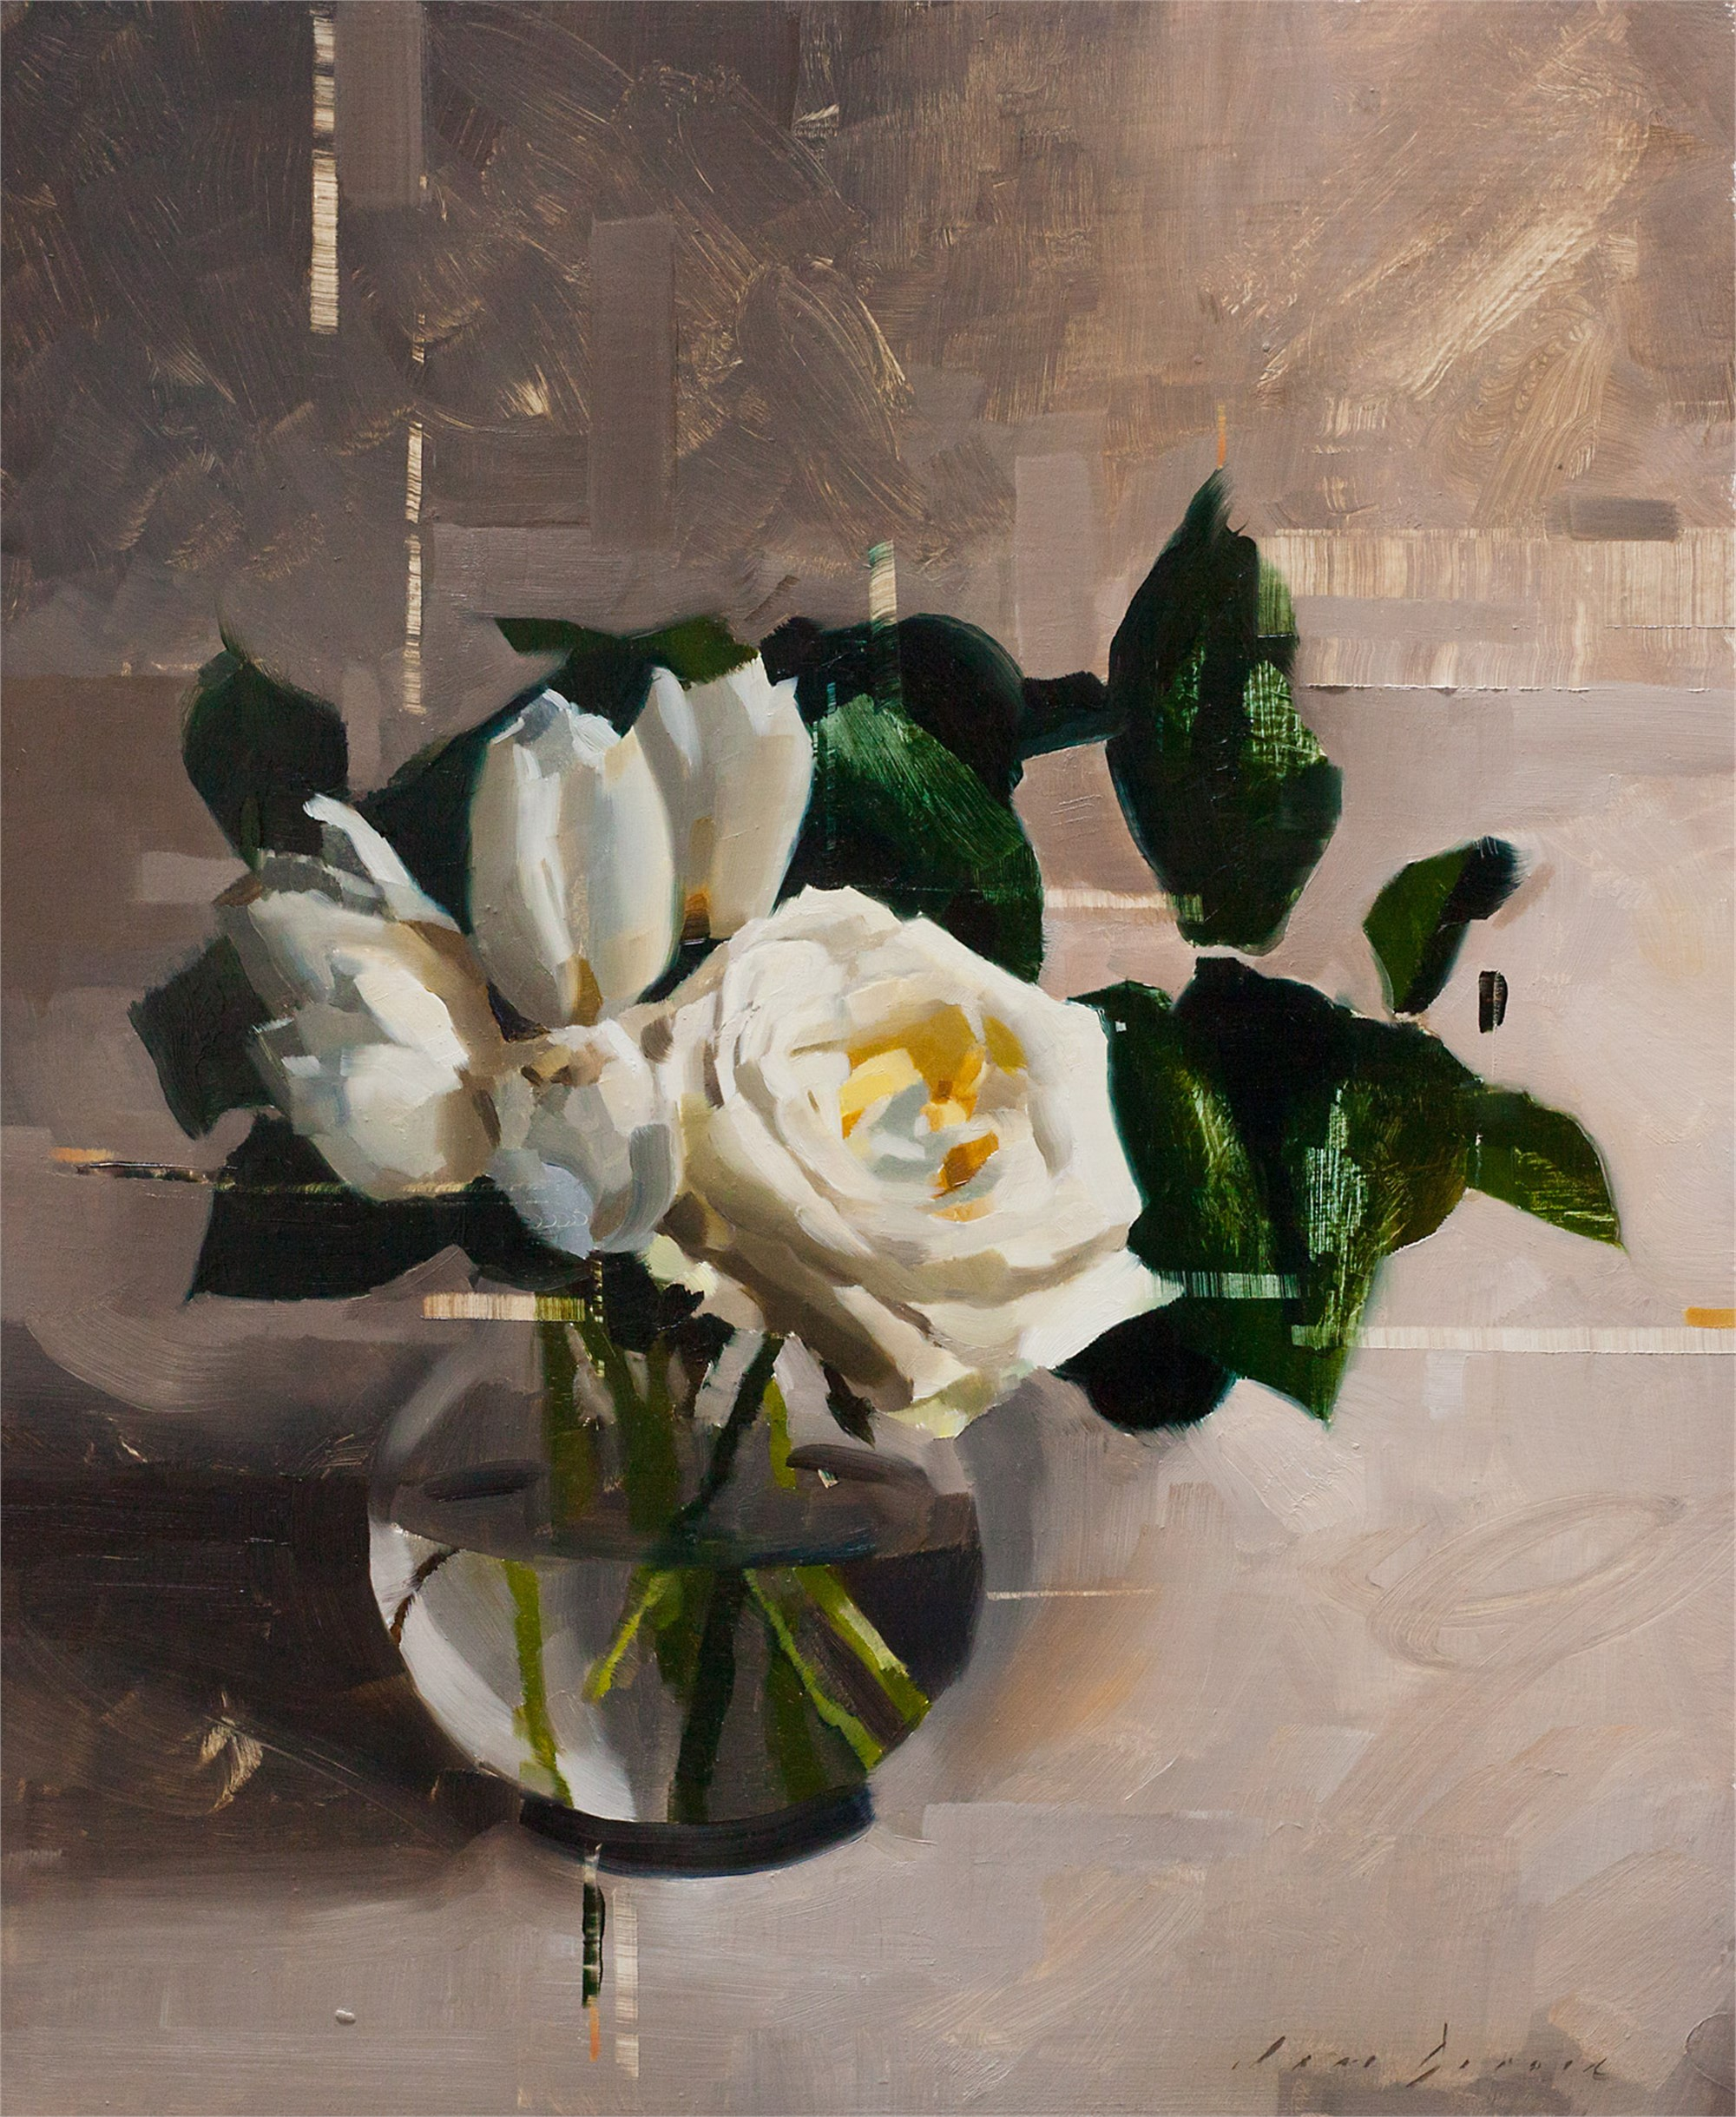 White Rose and Tulips by Jon Doran